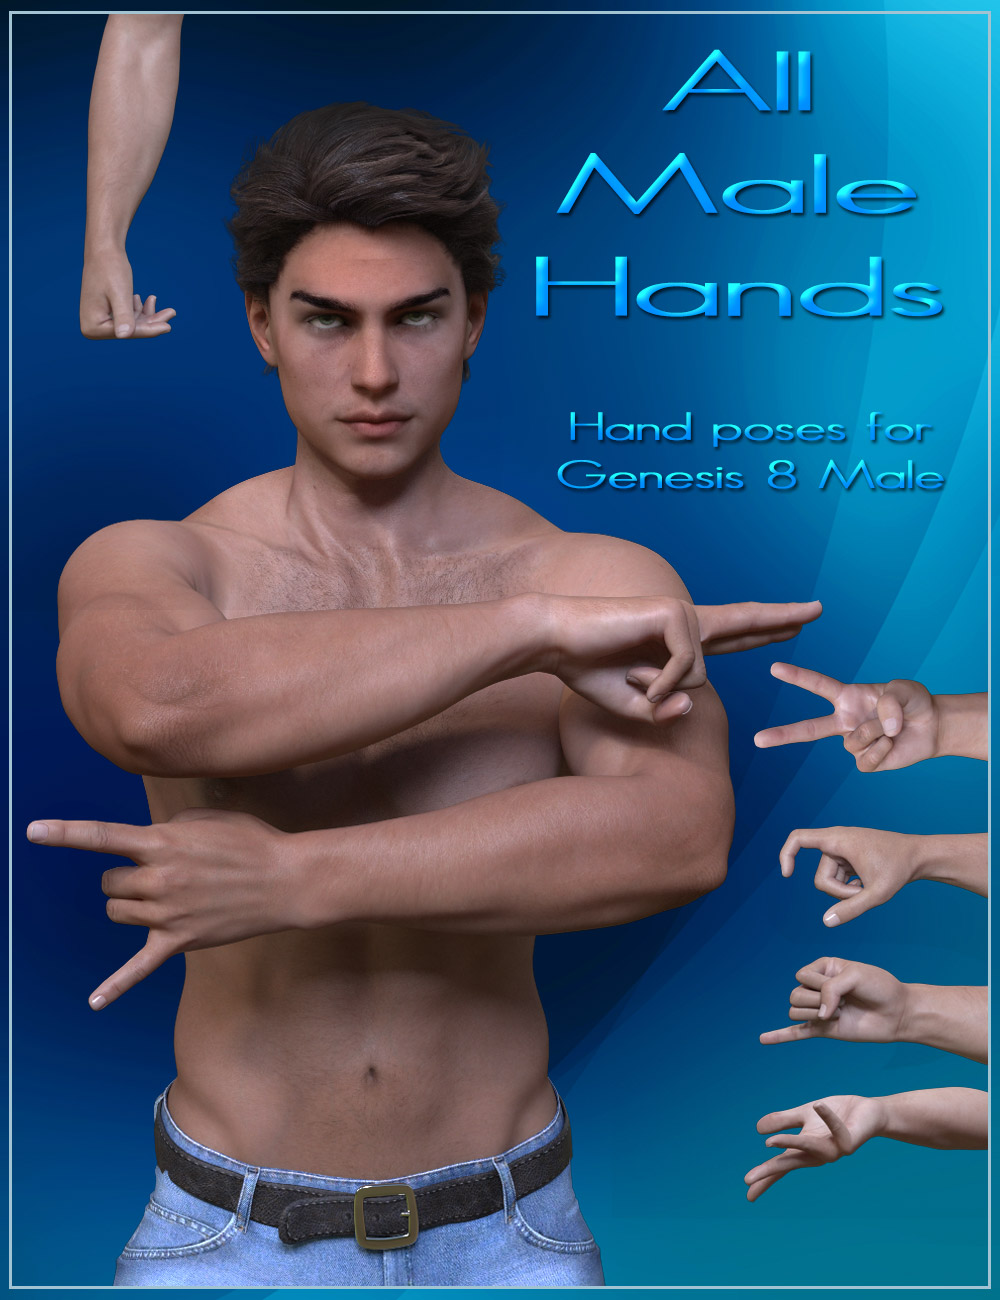 All Male Hands - Hands Poses for Genesis 8 Male by: ilona, 3D Models by Daz 3D